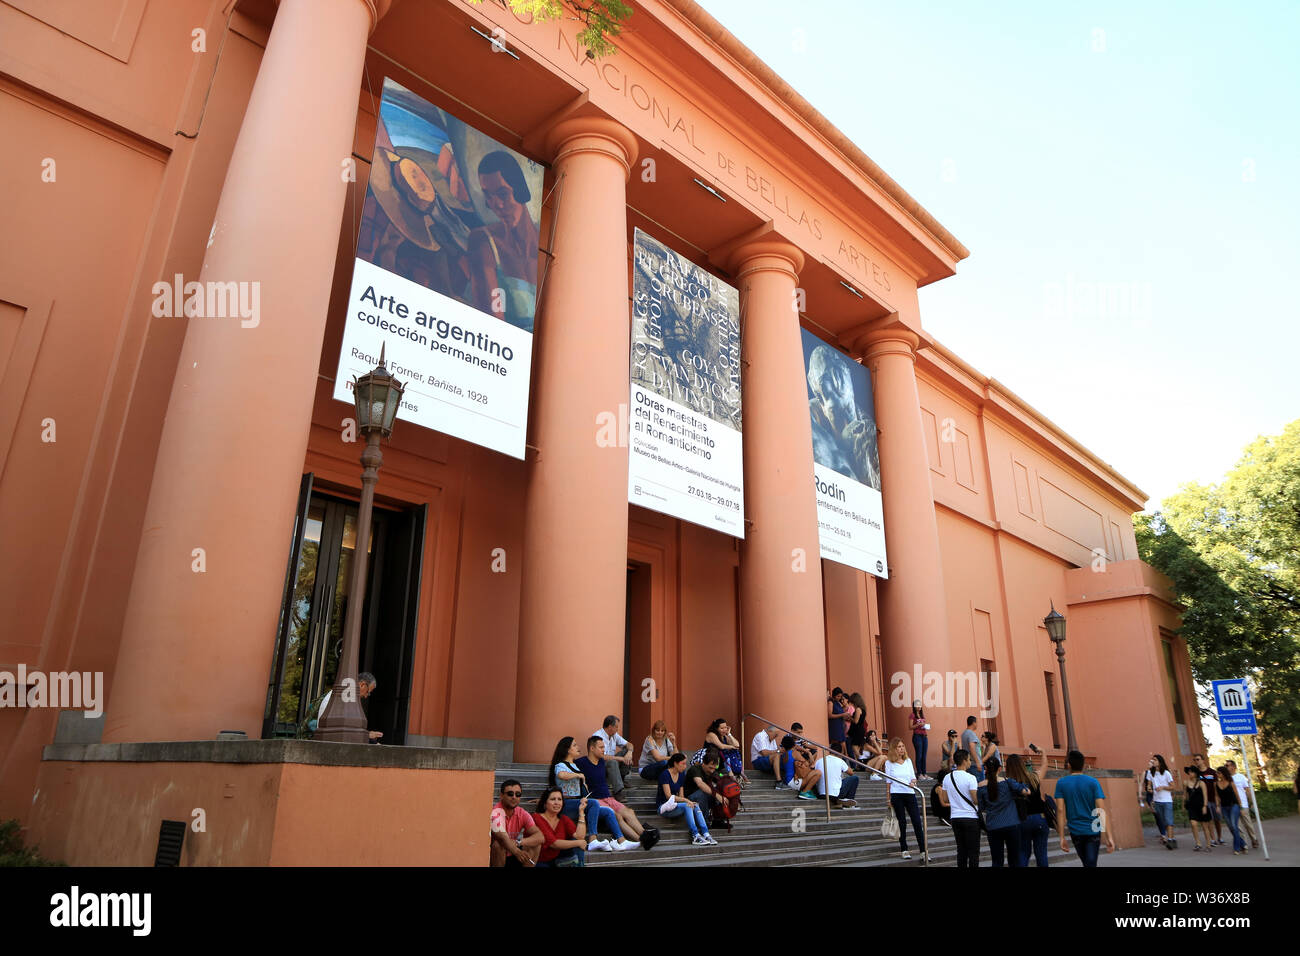 Buenos Aires, Argentina, Stunning Facade of the National Museum of Fine Arts or Museo Nacional de Bellas Artes with Many Visitors Stock Photo